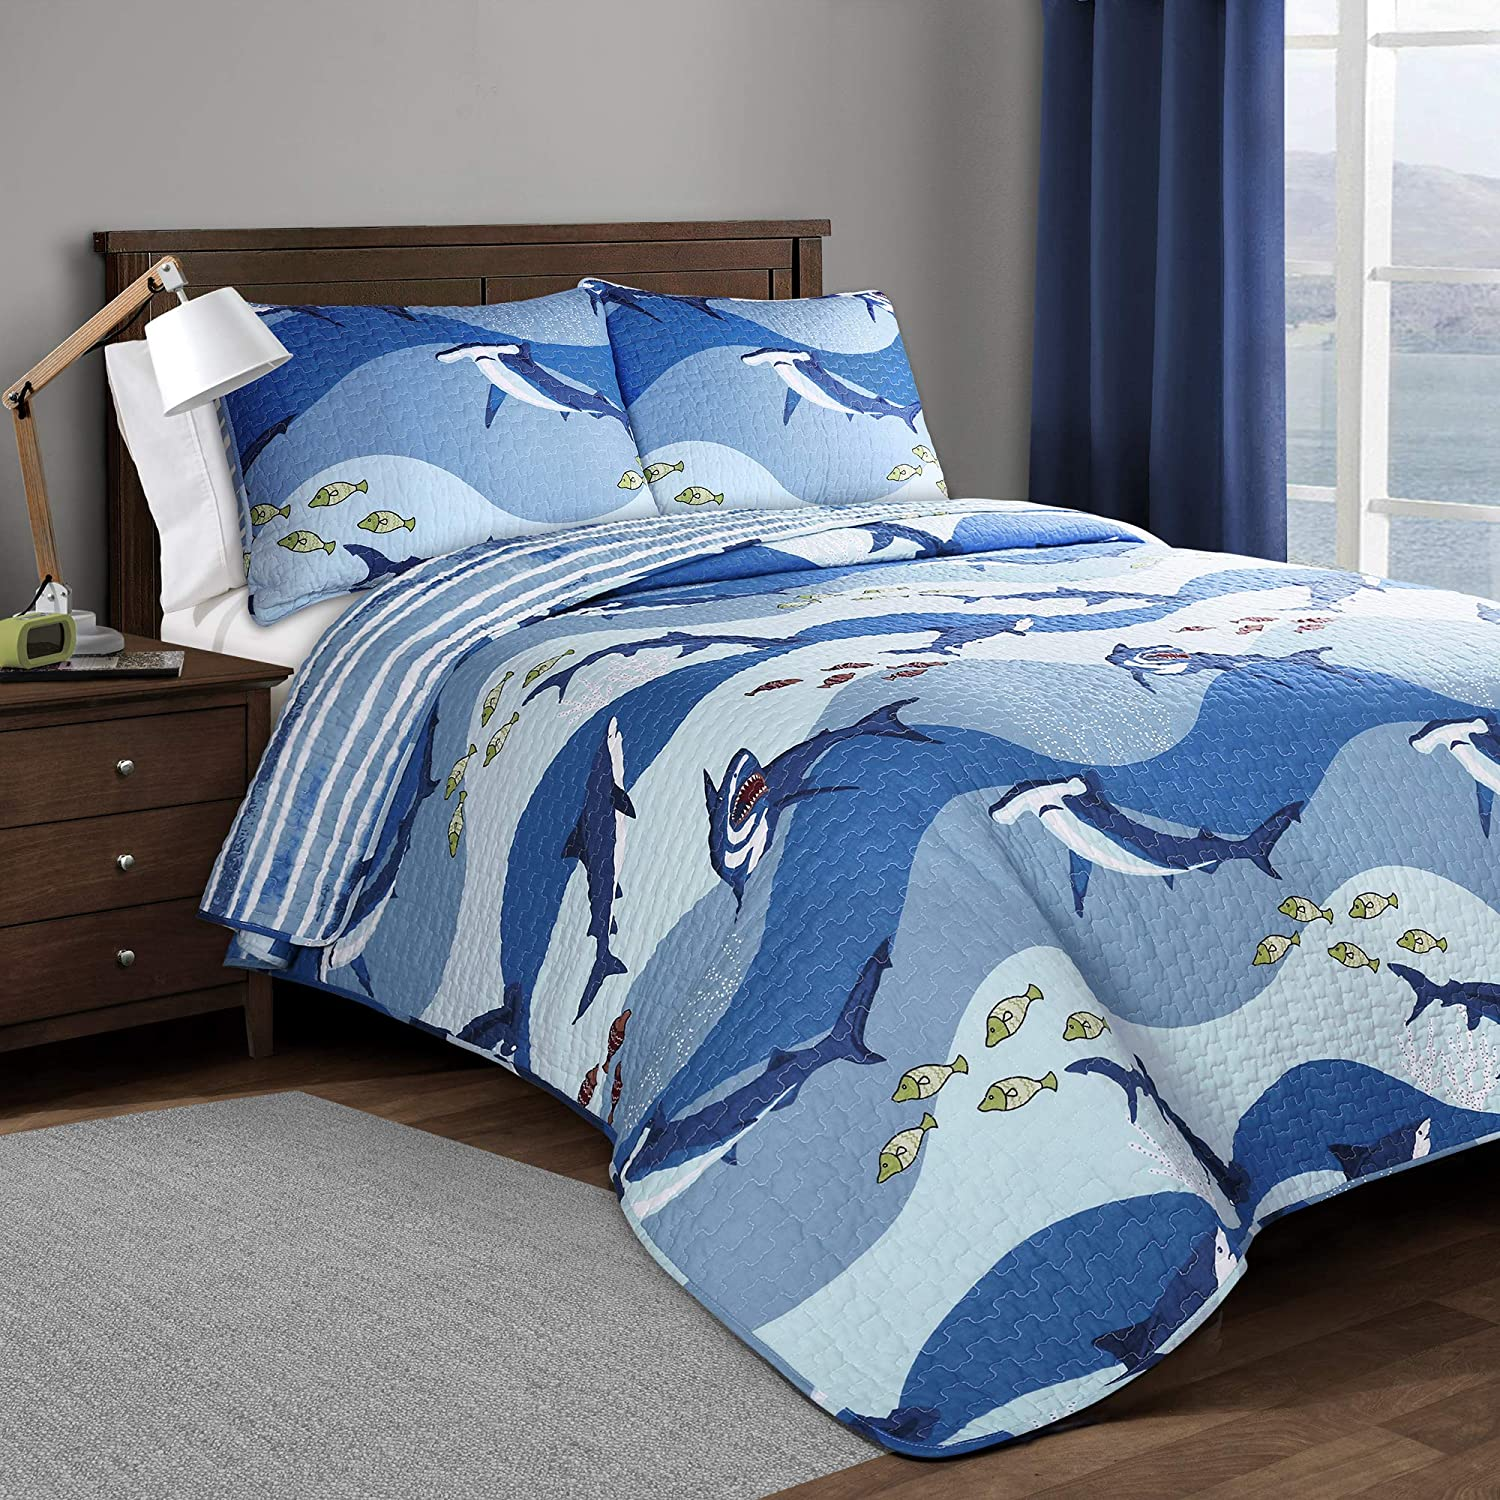 Lush Decor Shark Allover 3 Piece Quilt Set, Full/Queen, Blue